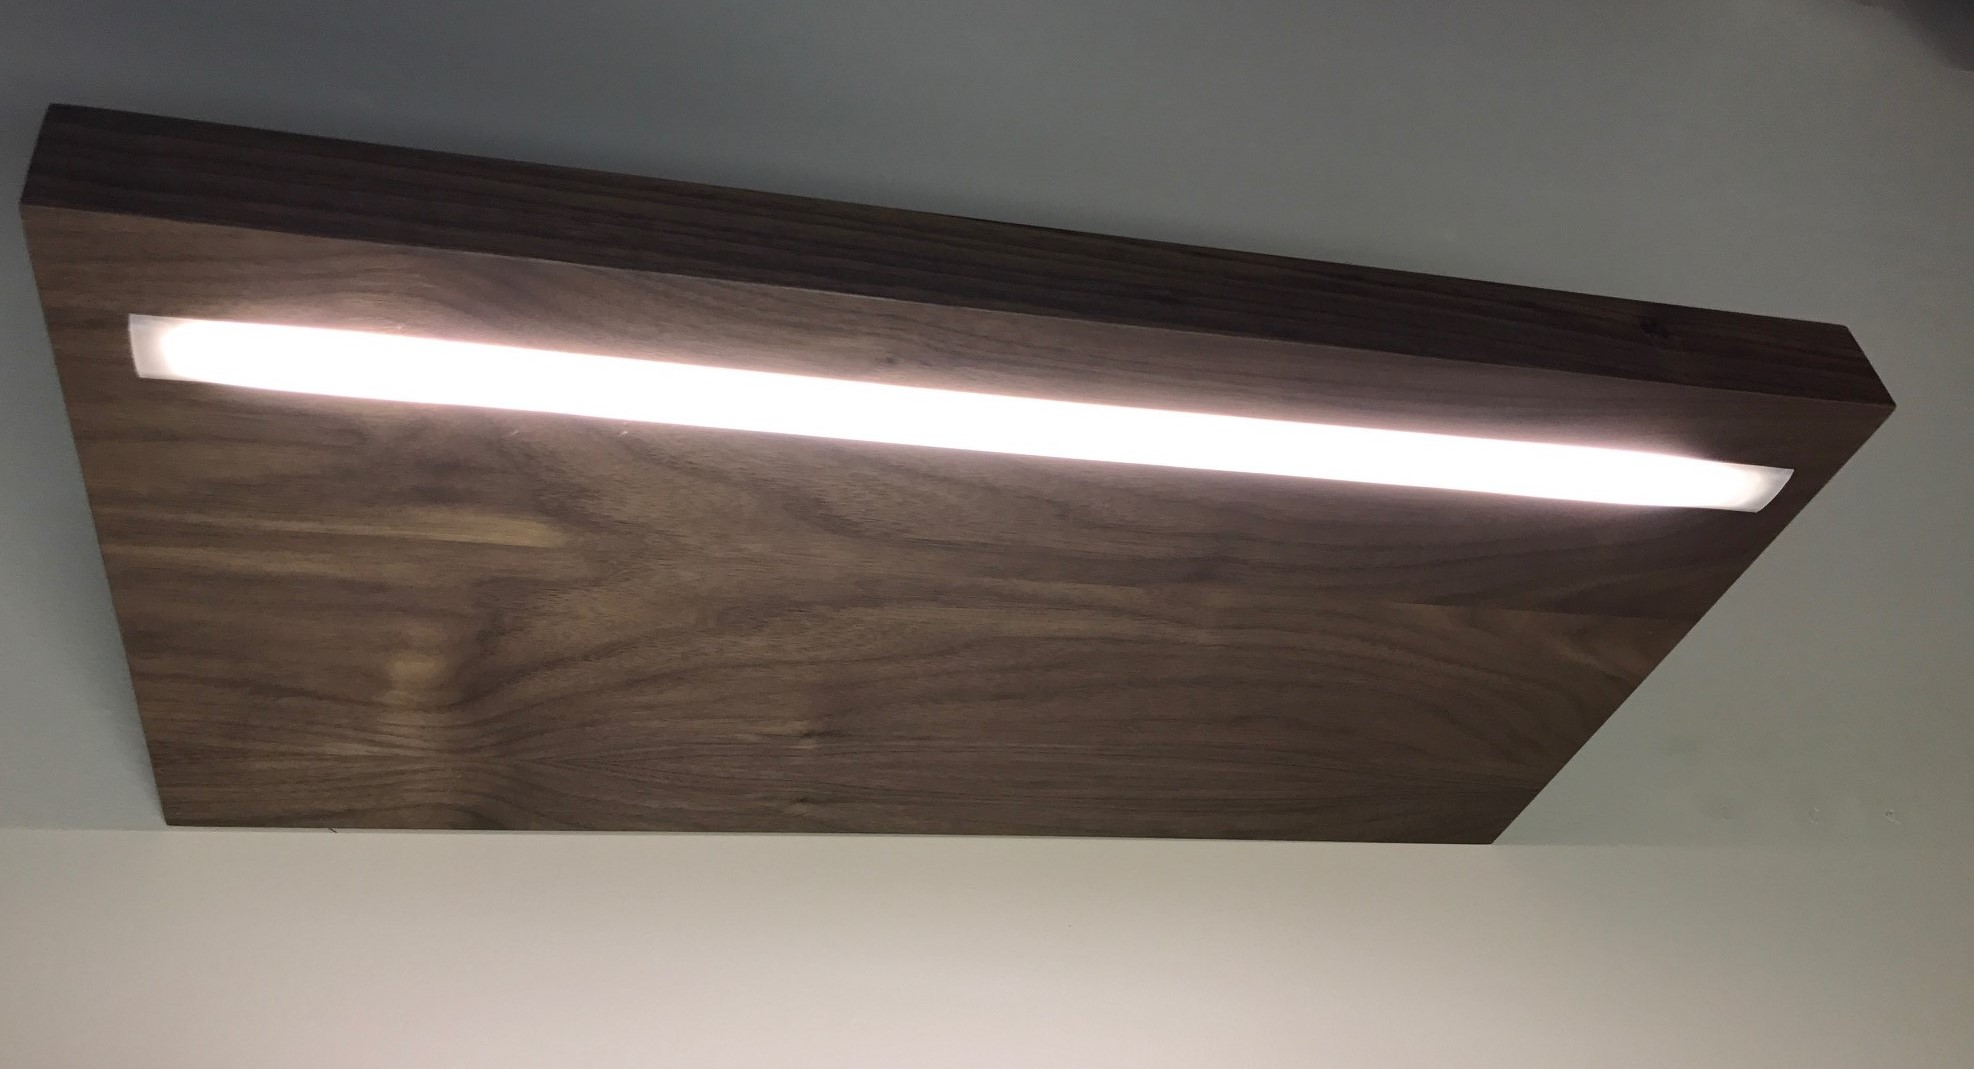 led lighting options for custom floating shelves img black shelf with lights recessed strip light pink portable kitchen island sink closet systems built vonhaus media player